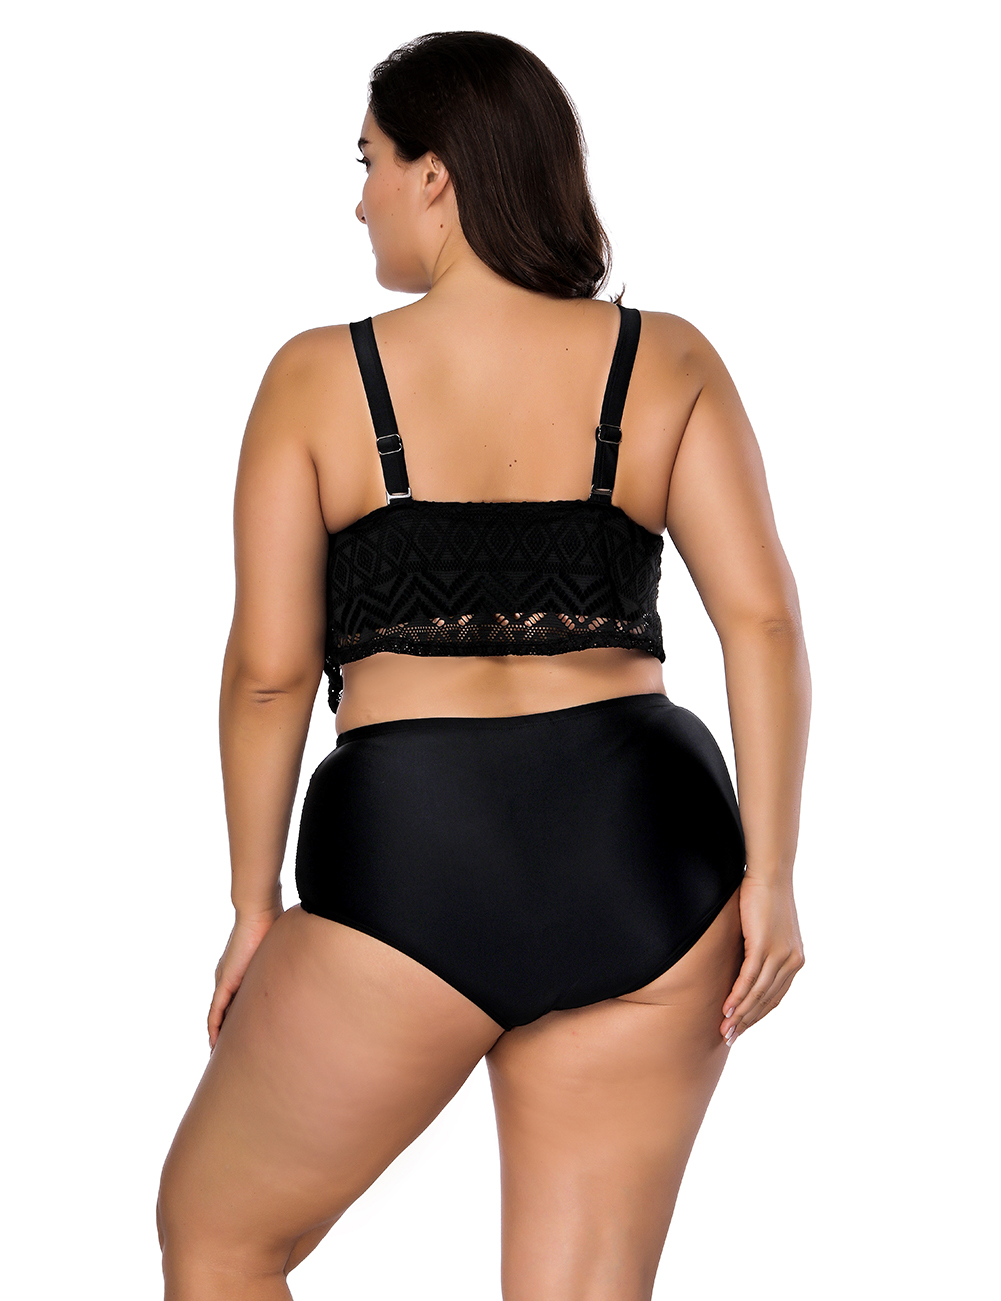 //cdn.affectcloud.com/hexinfashion/upload/imgs/BIG_SALE/Swimsuits_over_$3/LB160387/LB160387-202006115ee1f28f81058.jpg